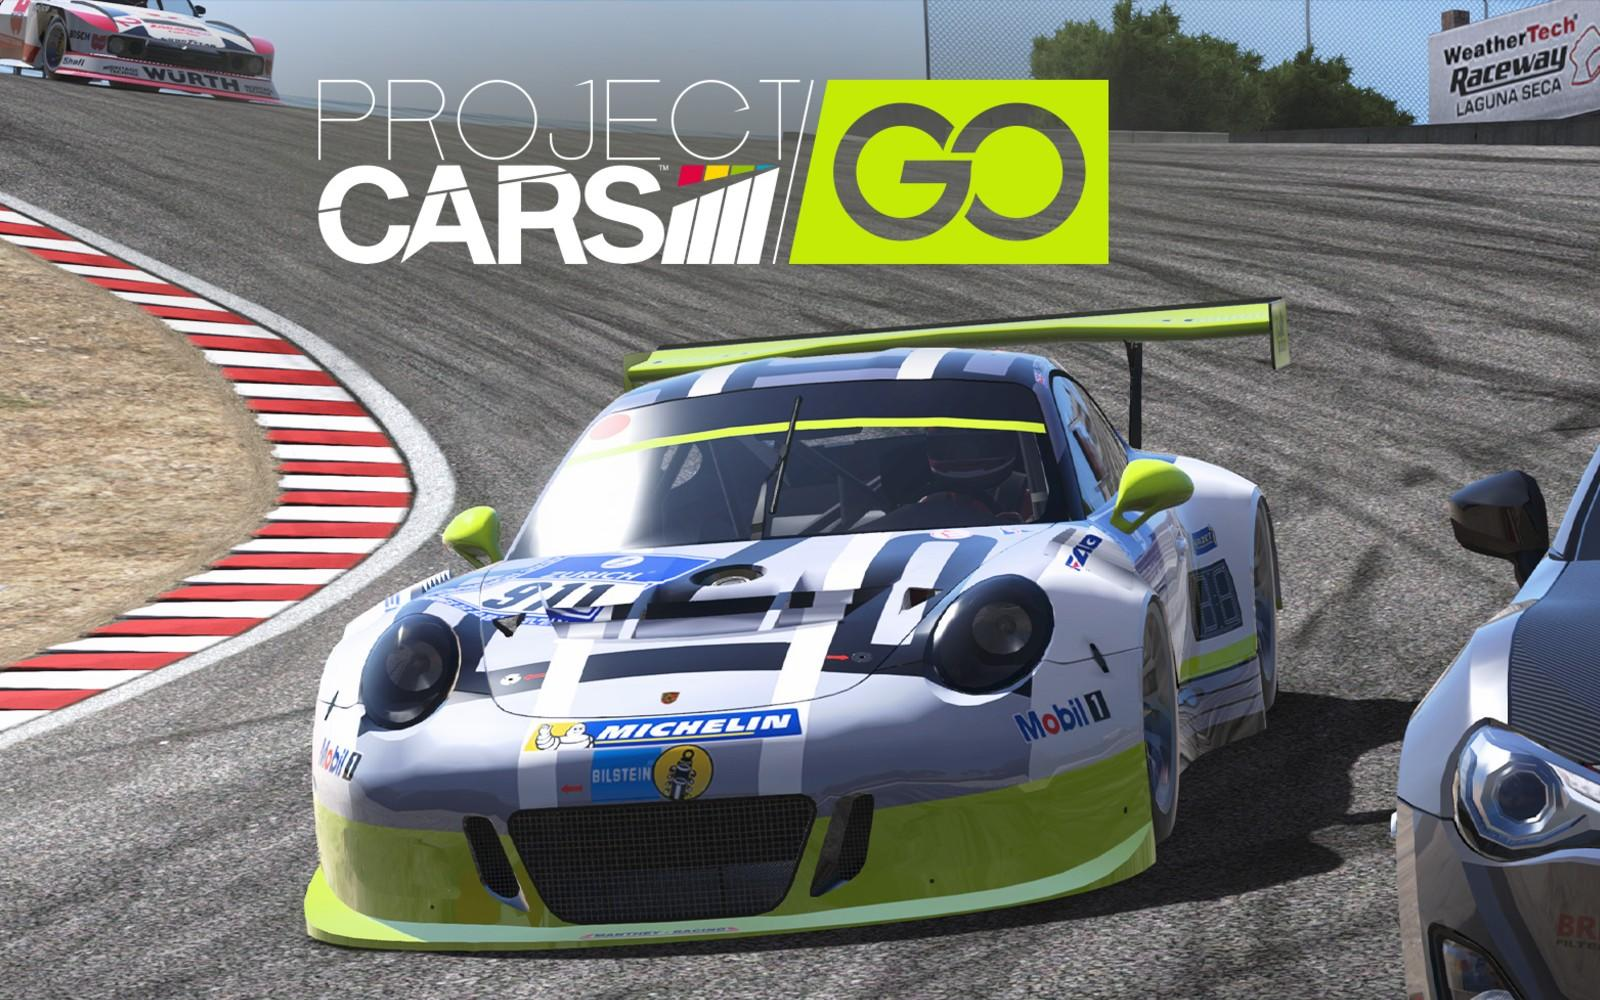 'Project CARS GO' finally comes out on March 23rd for Android and iOS